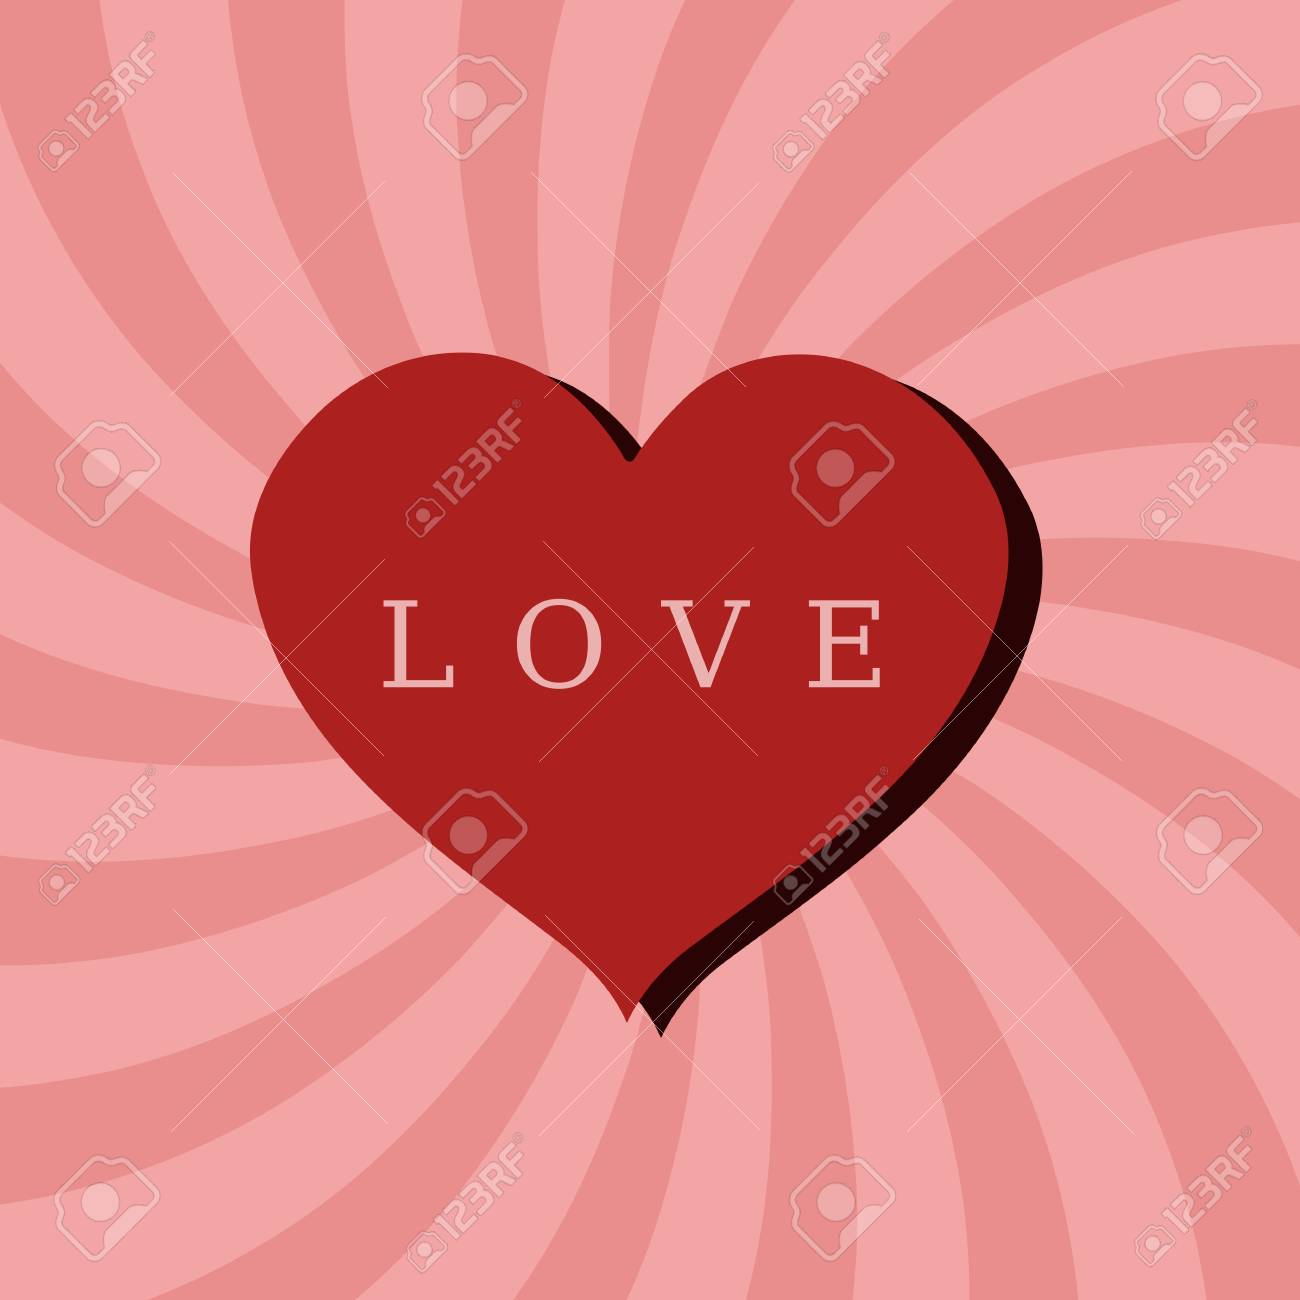 Romantic celebration background for Valentine's Day. Heart and concentric rays backdrop. Stock Vector - 16540468